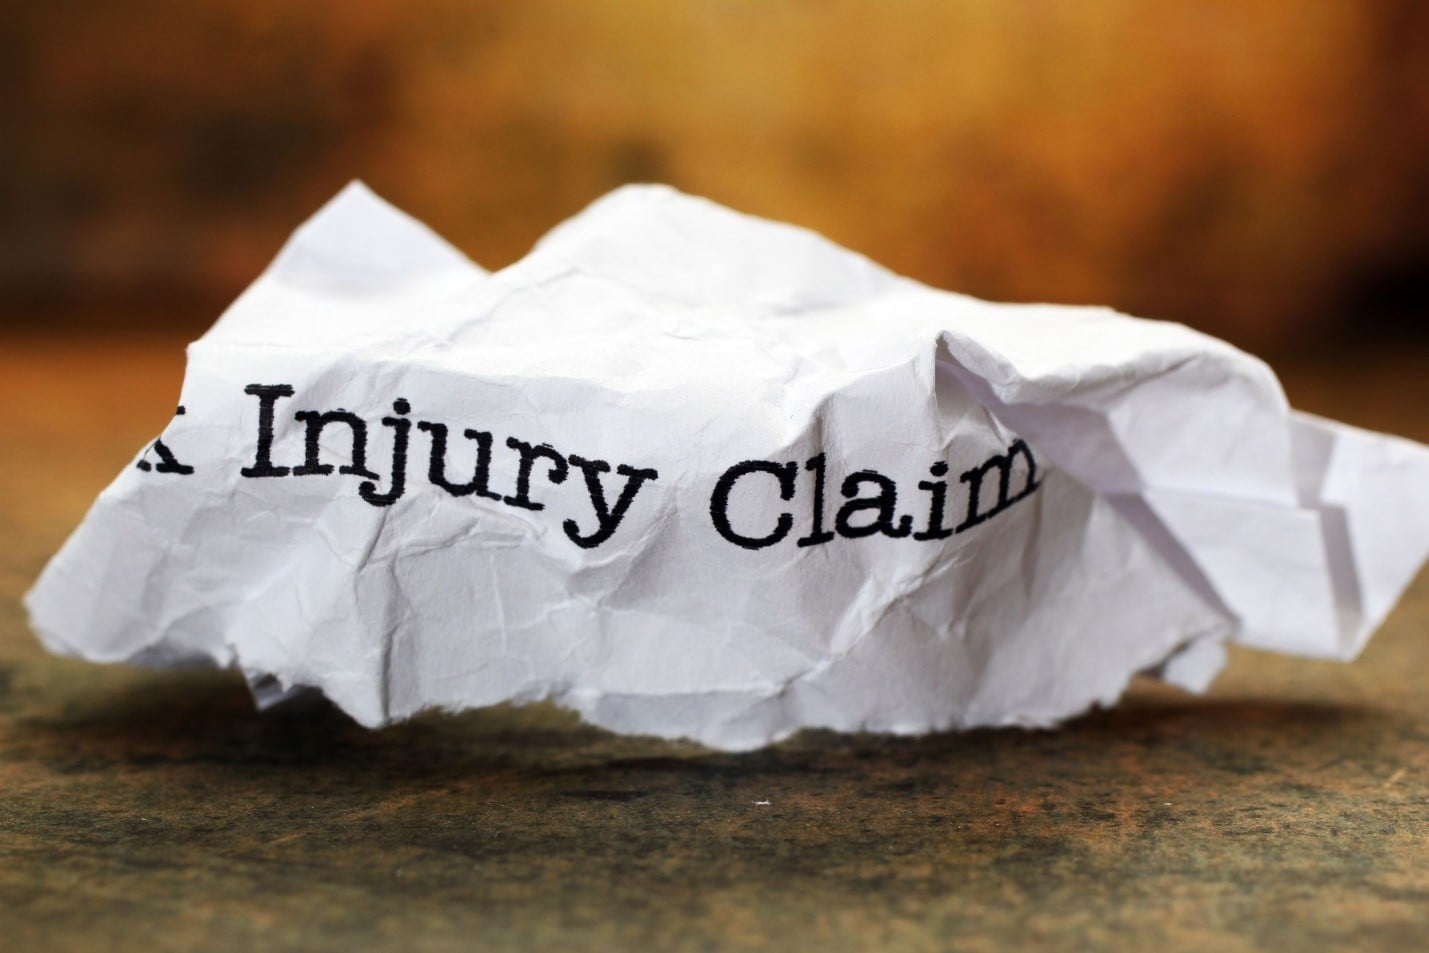 The Drawbacks of Neglecting to File a Personal Injury Claim